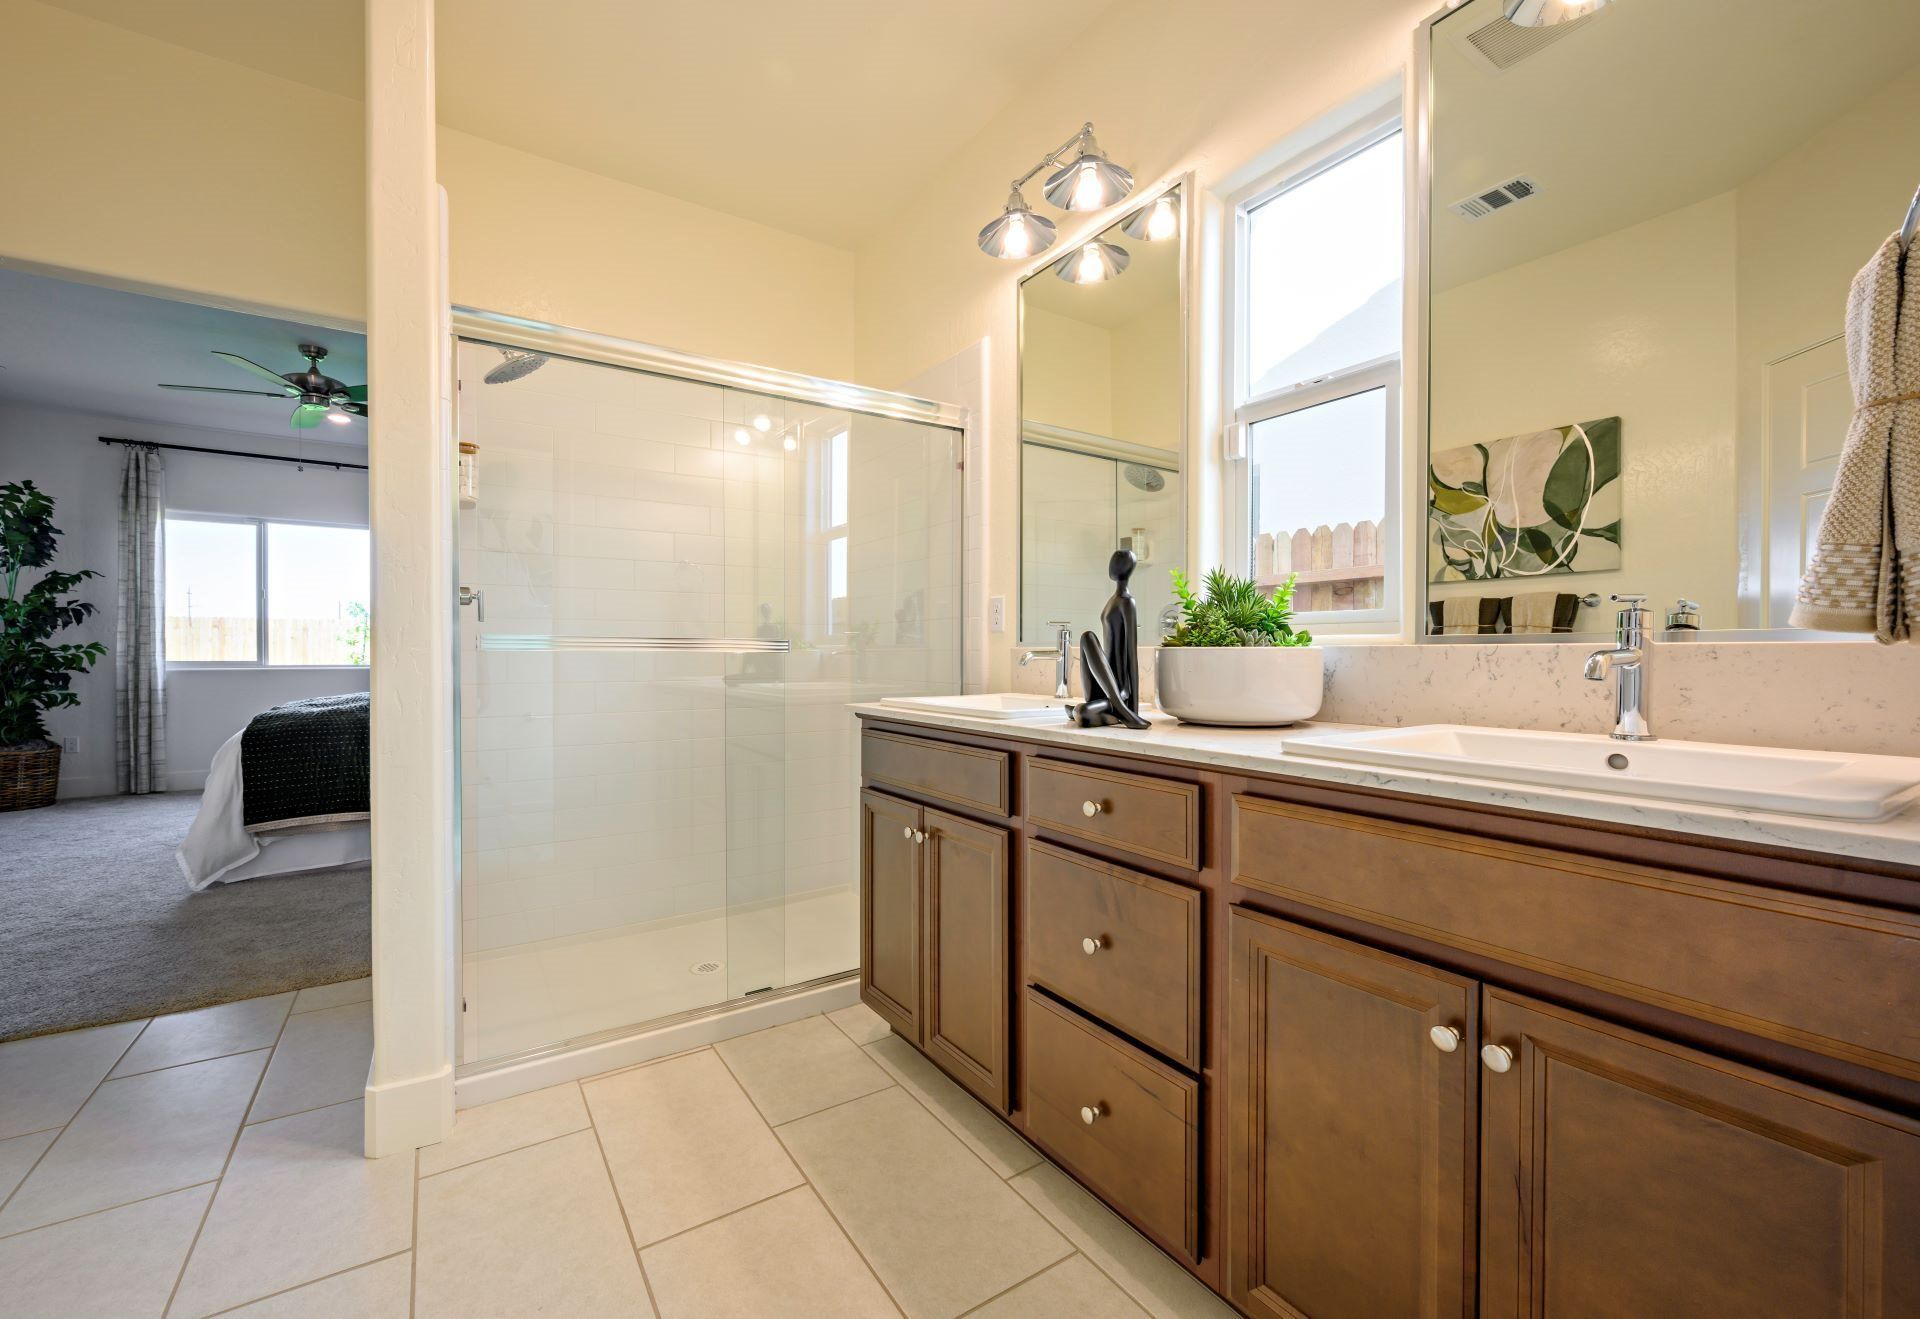 Bathroom featured in the Aria By Lennar in Fresno, CA